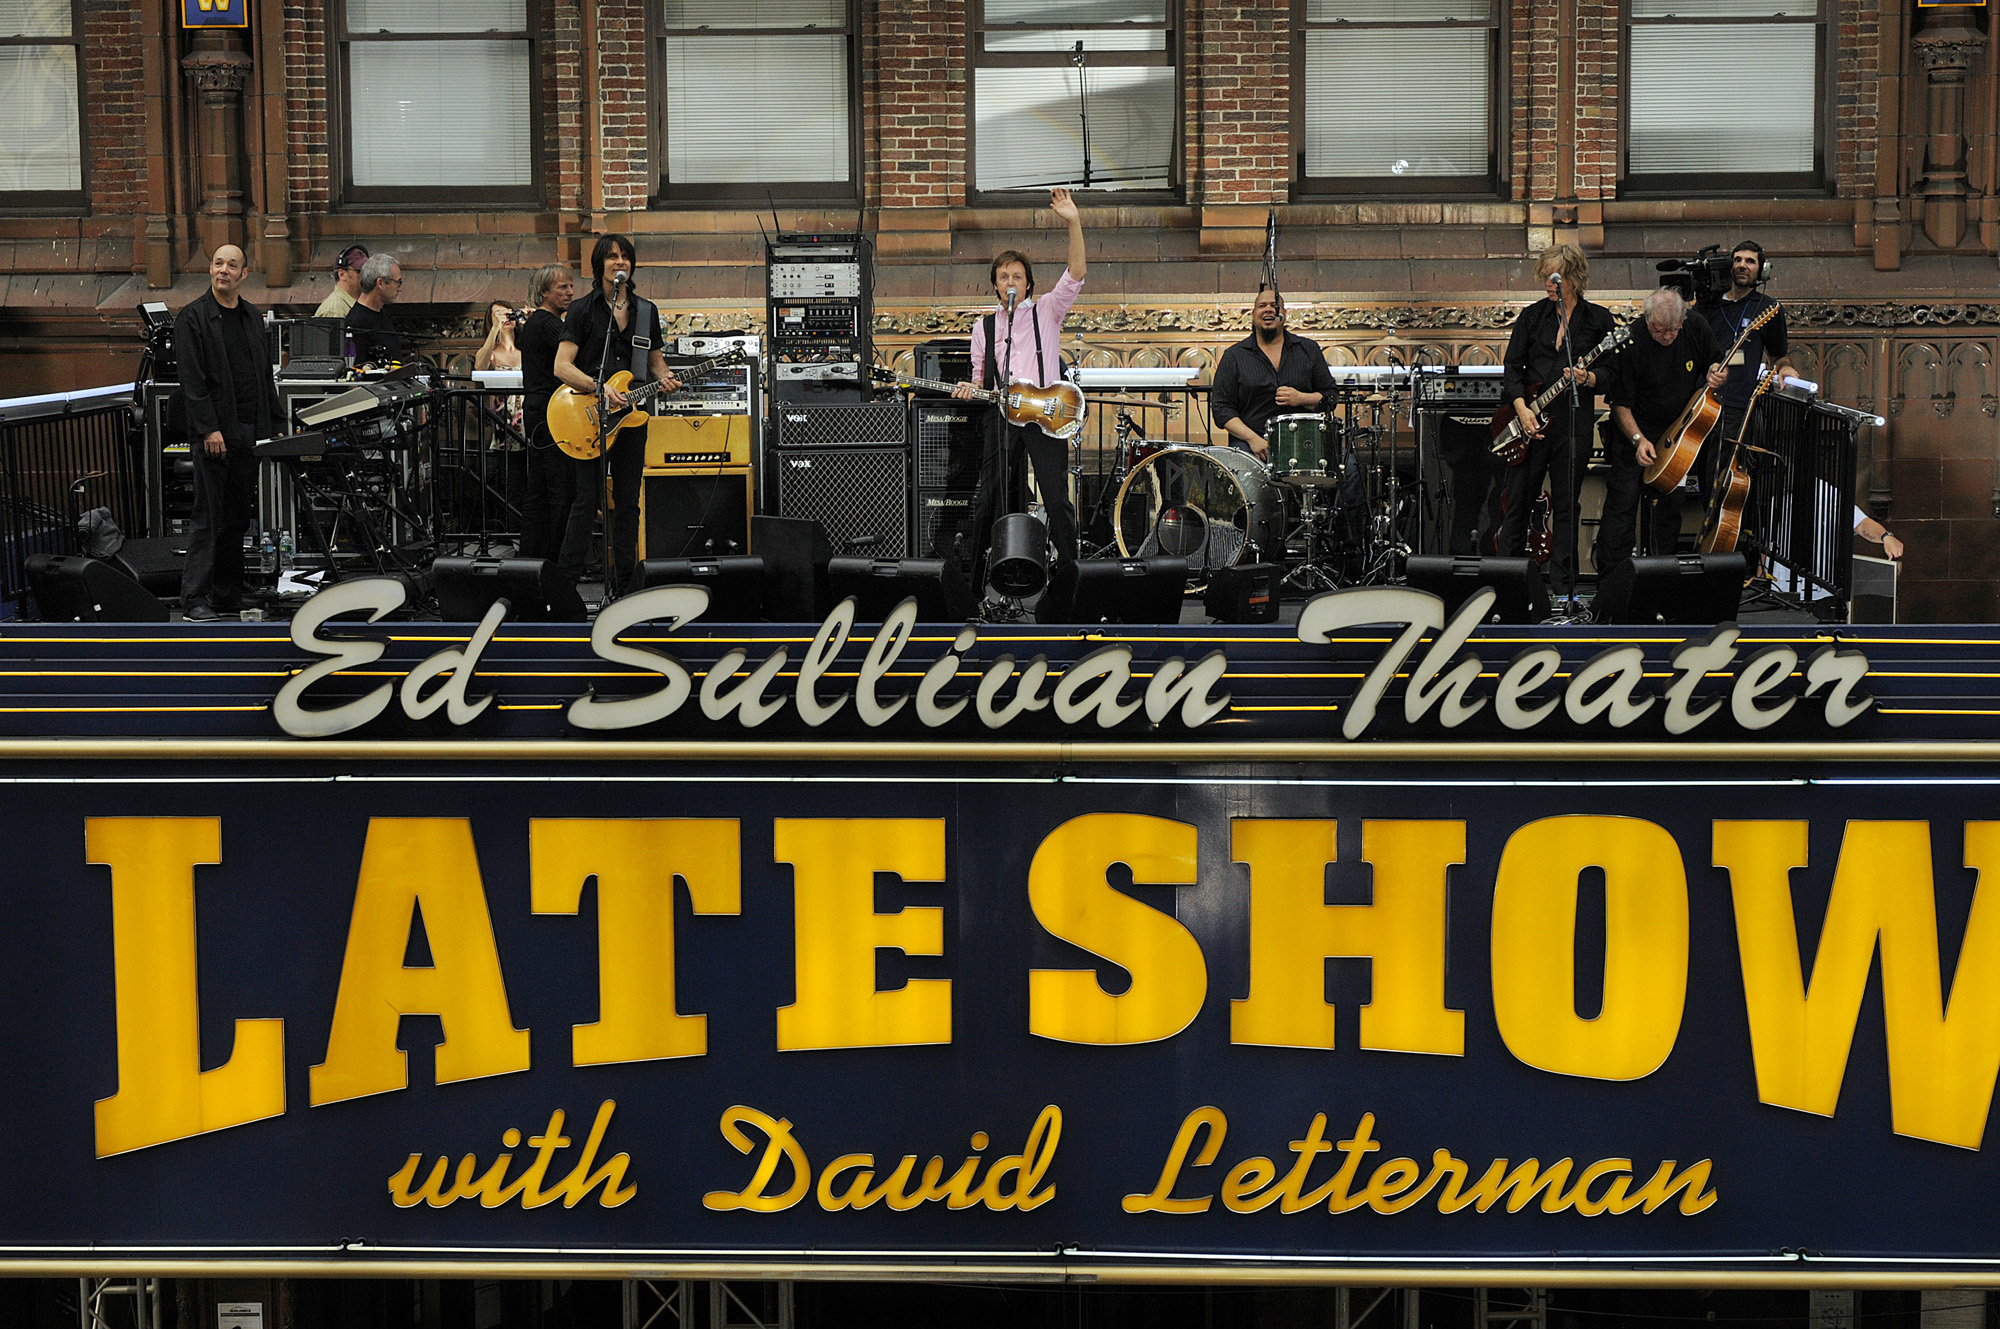 5 Best Bands to Play Late Night with David Letterman.